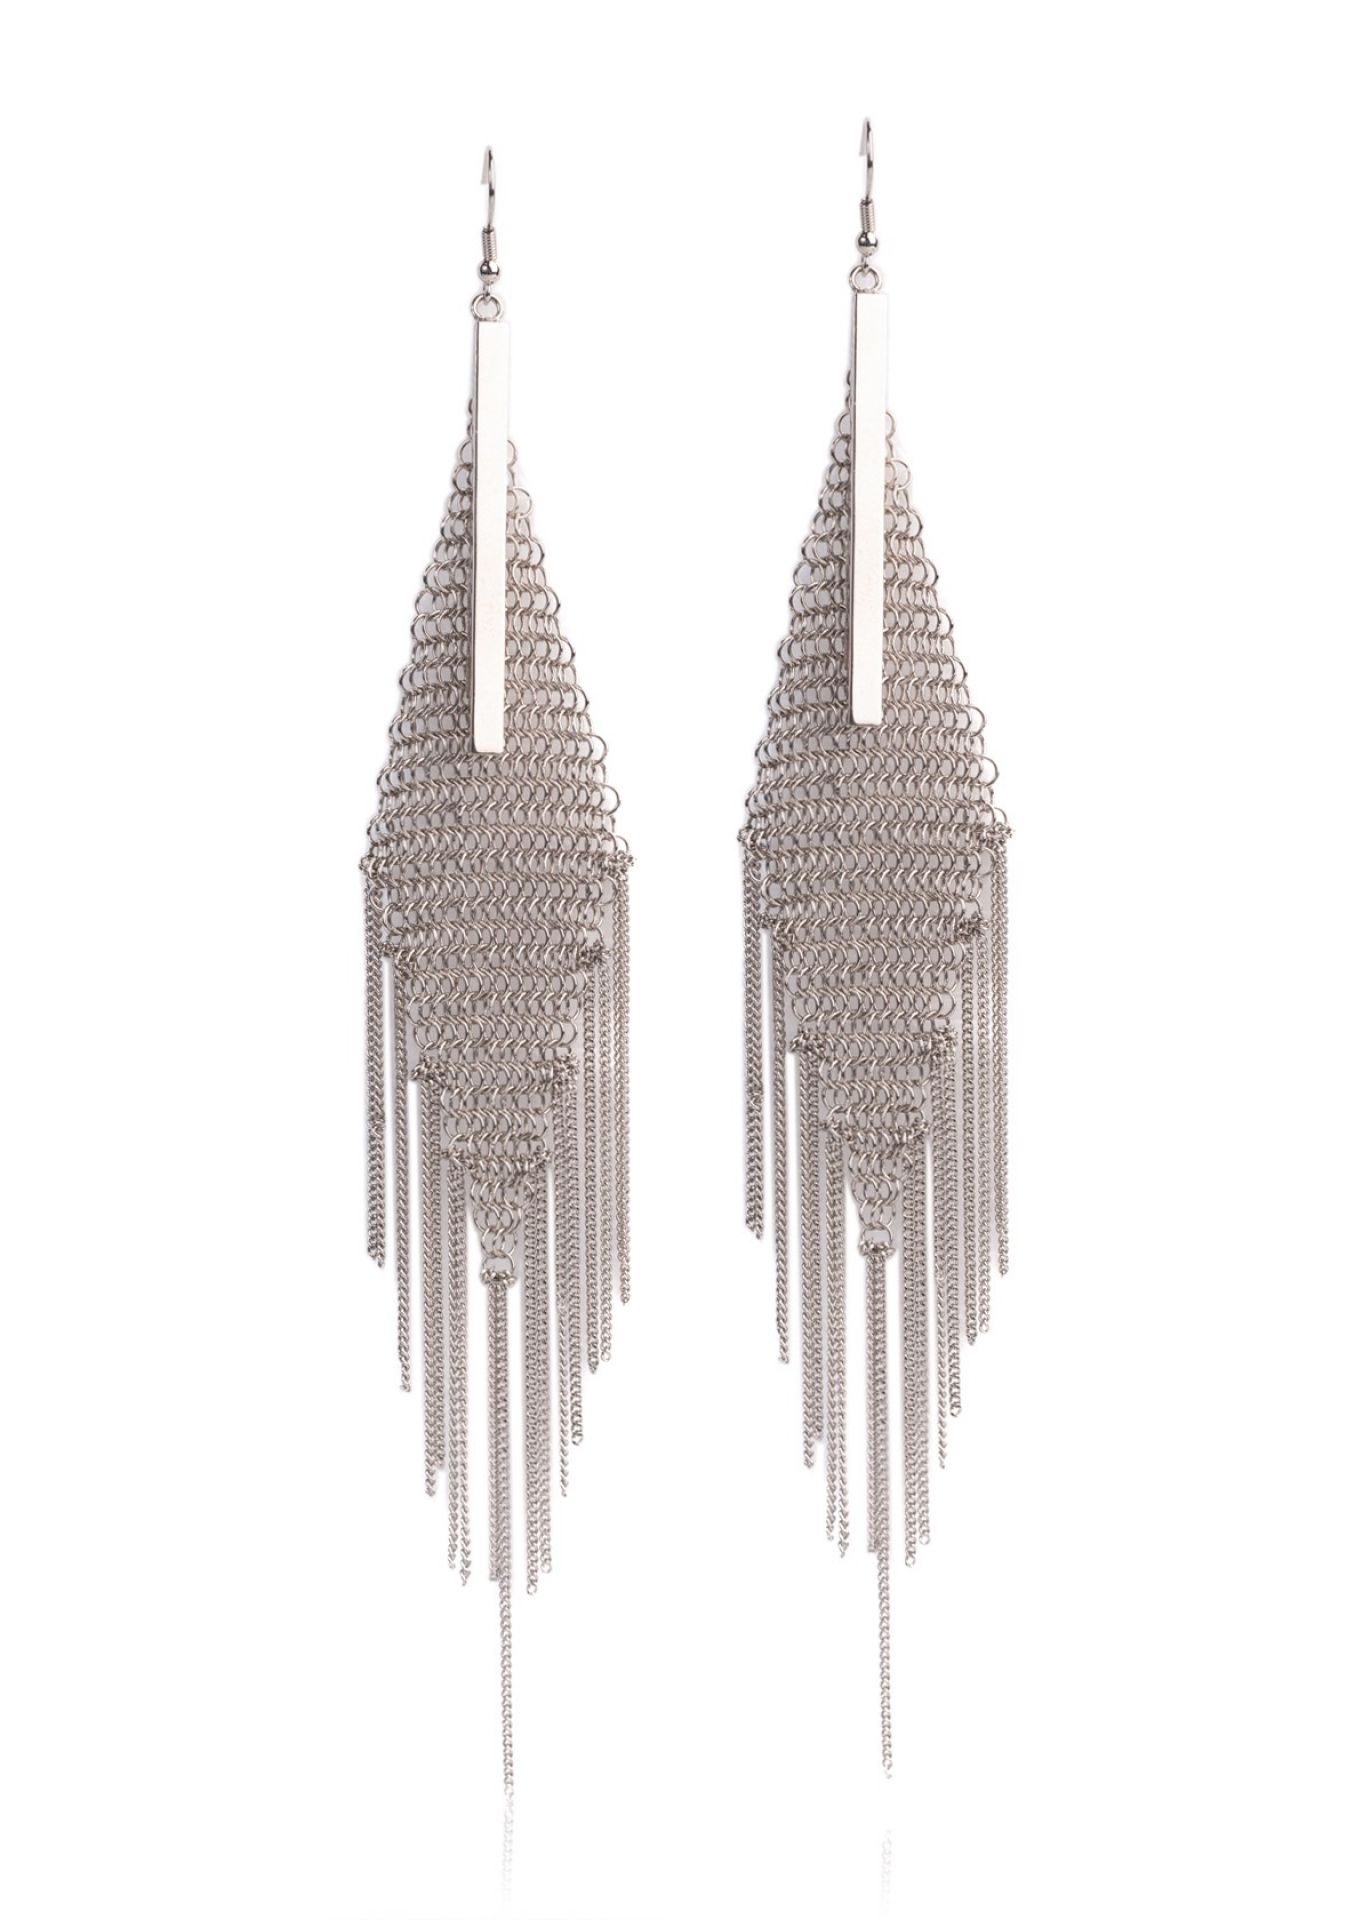 ROBERTO CAVALLI STERLING SILVER DIAMOND DROP EARRINGS